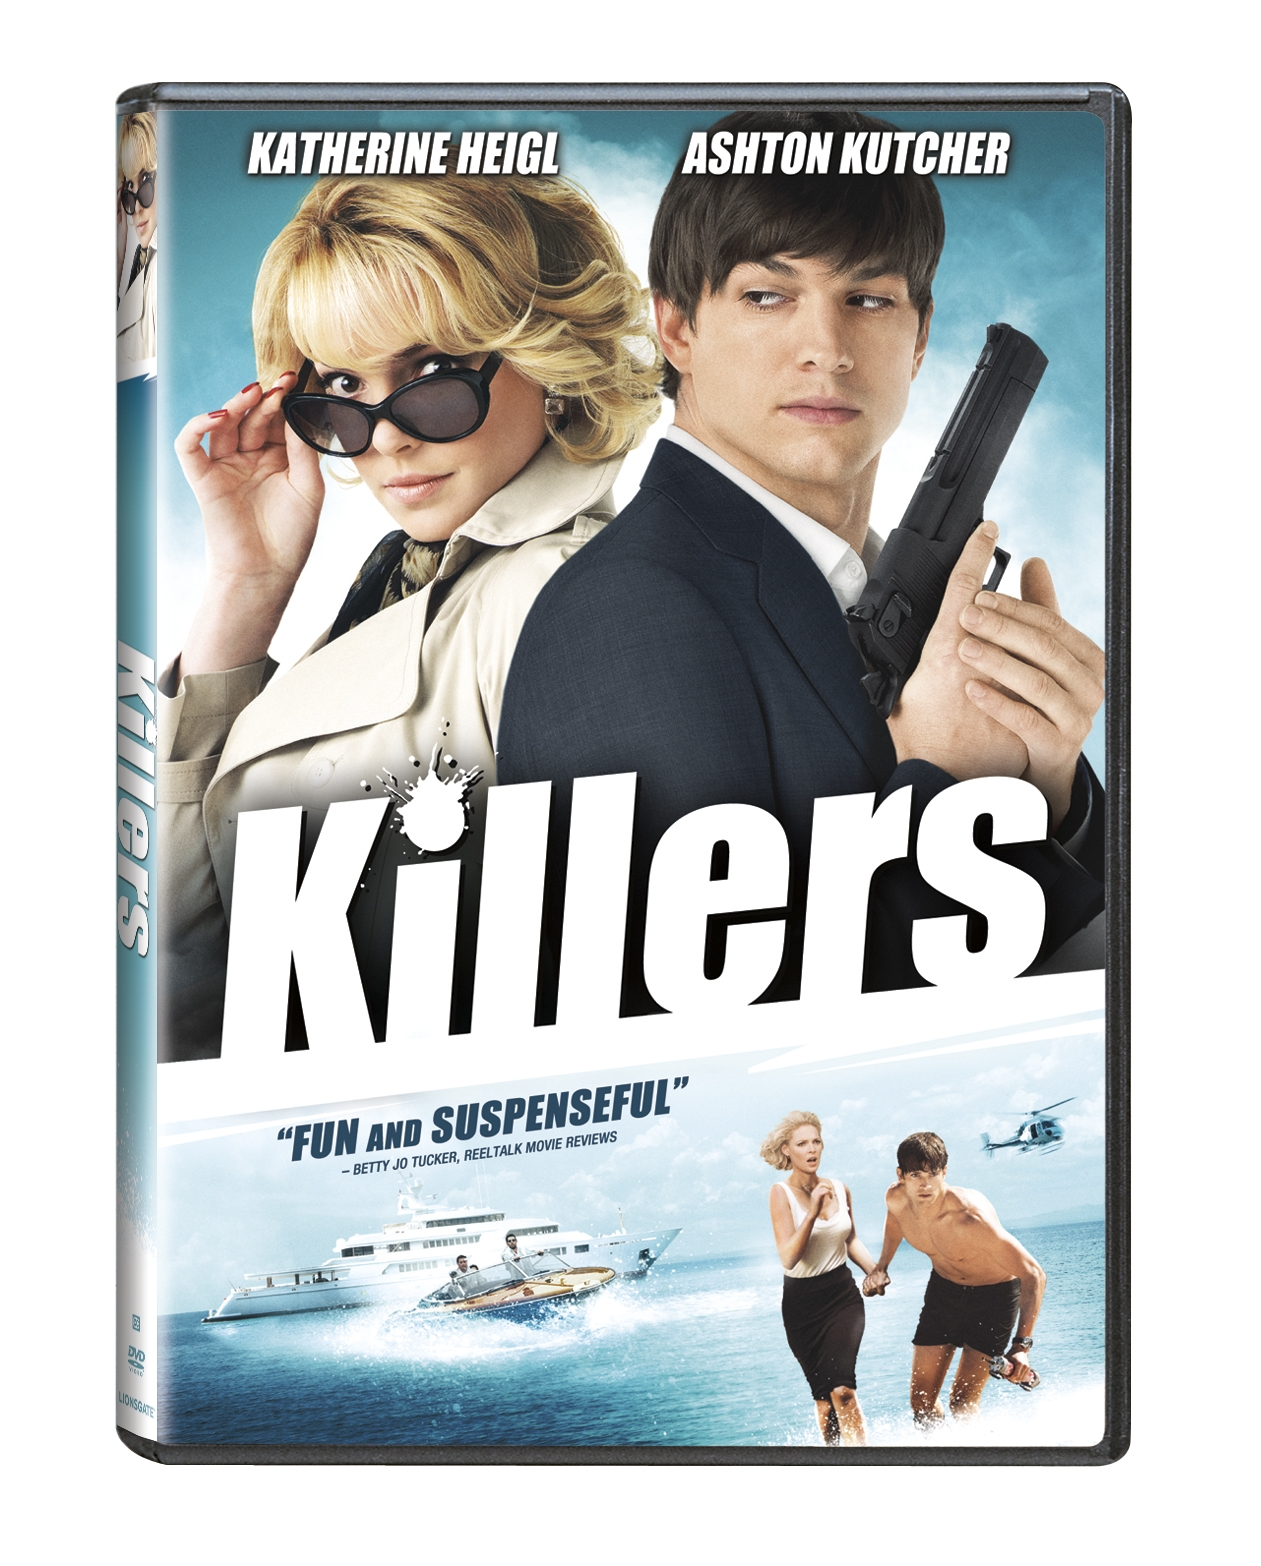 Action Rom Coms – with Giveaway: Lionsgate DVD Killers (Katherine Heigl, Ashton Kutcher)